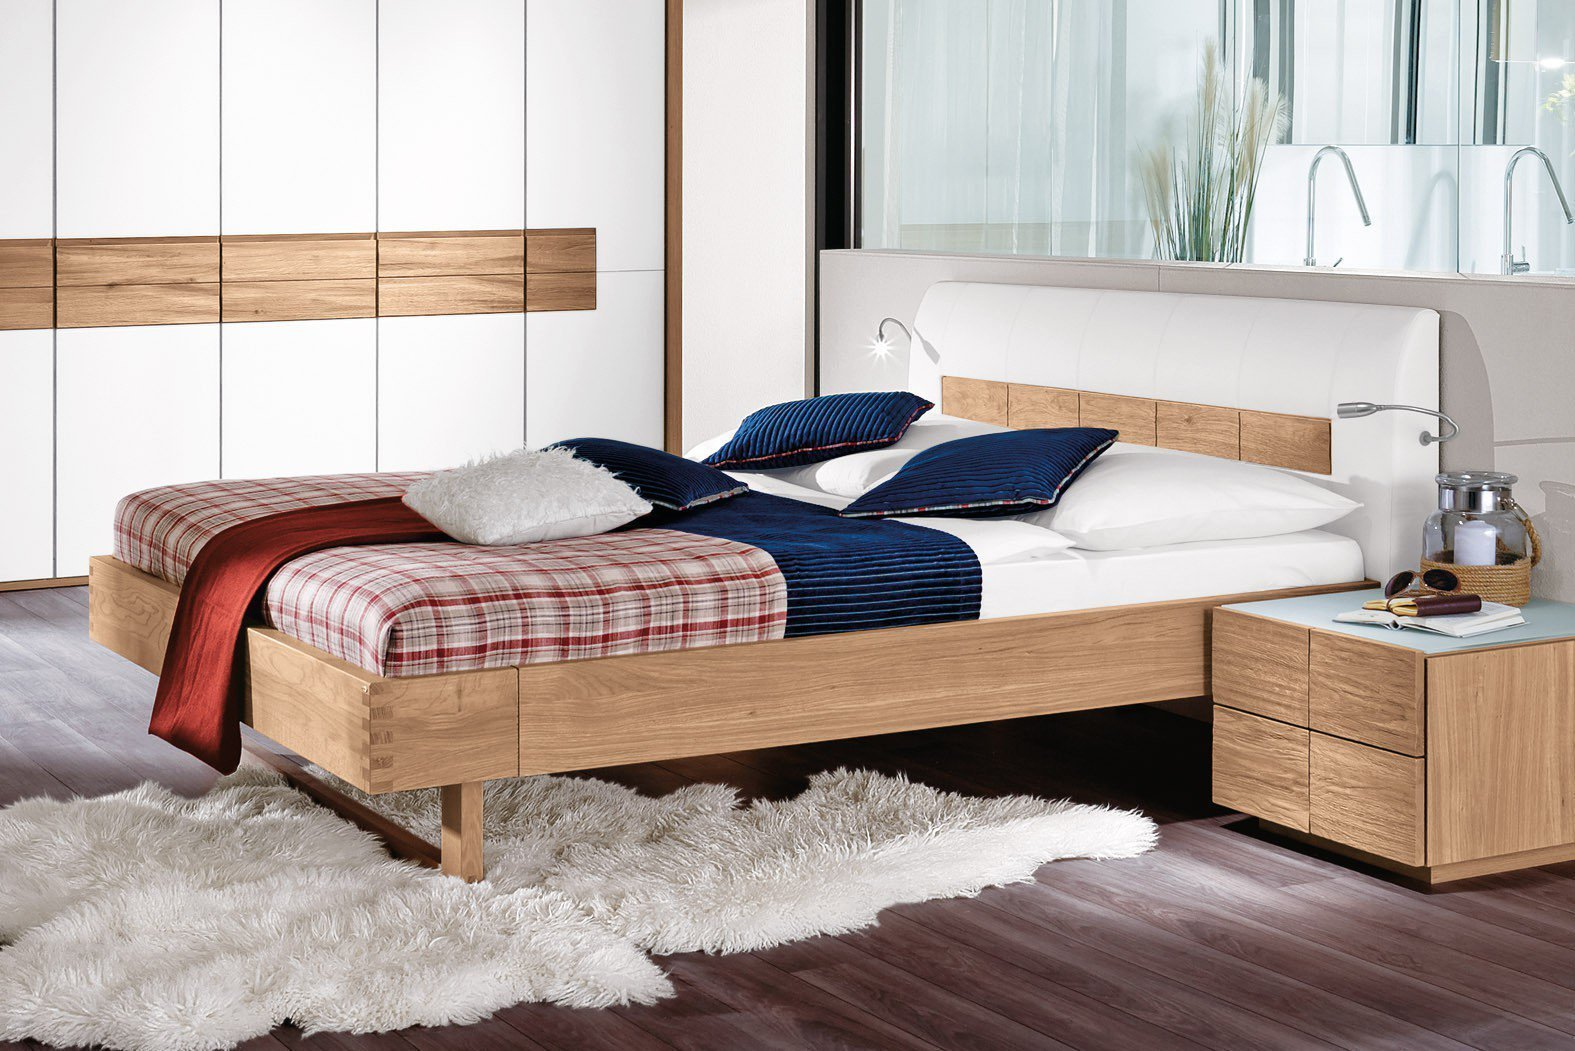 voglauer v rivera holzbett wildeiche ge lt m bel letz ihr online shop. Black Bedroom Furniture Sets. Home Design Ideas